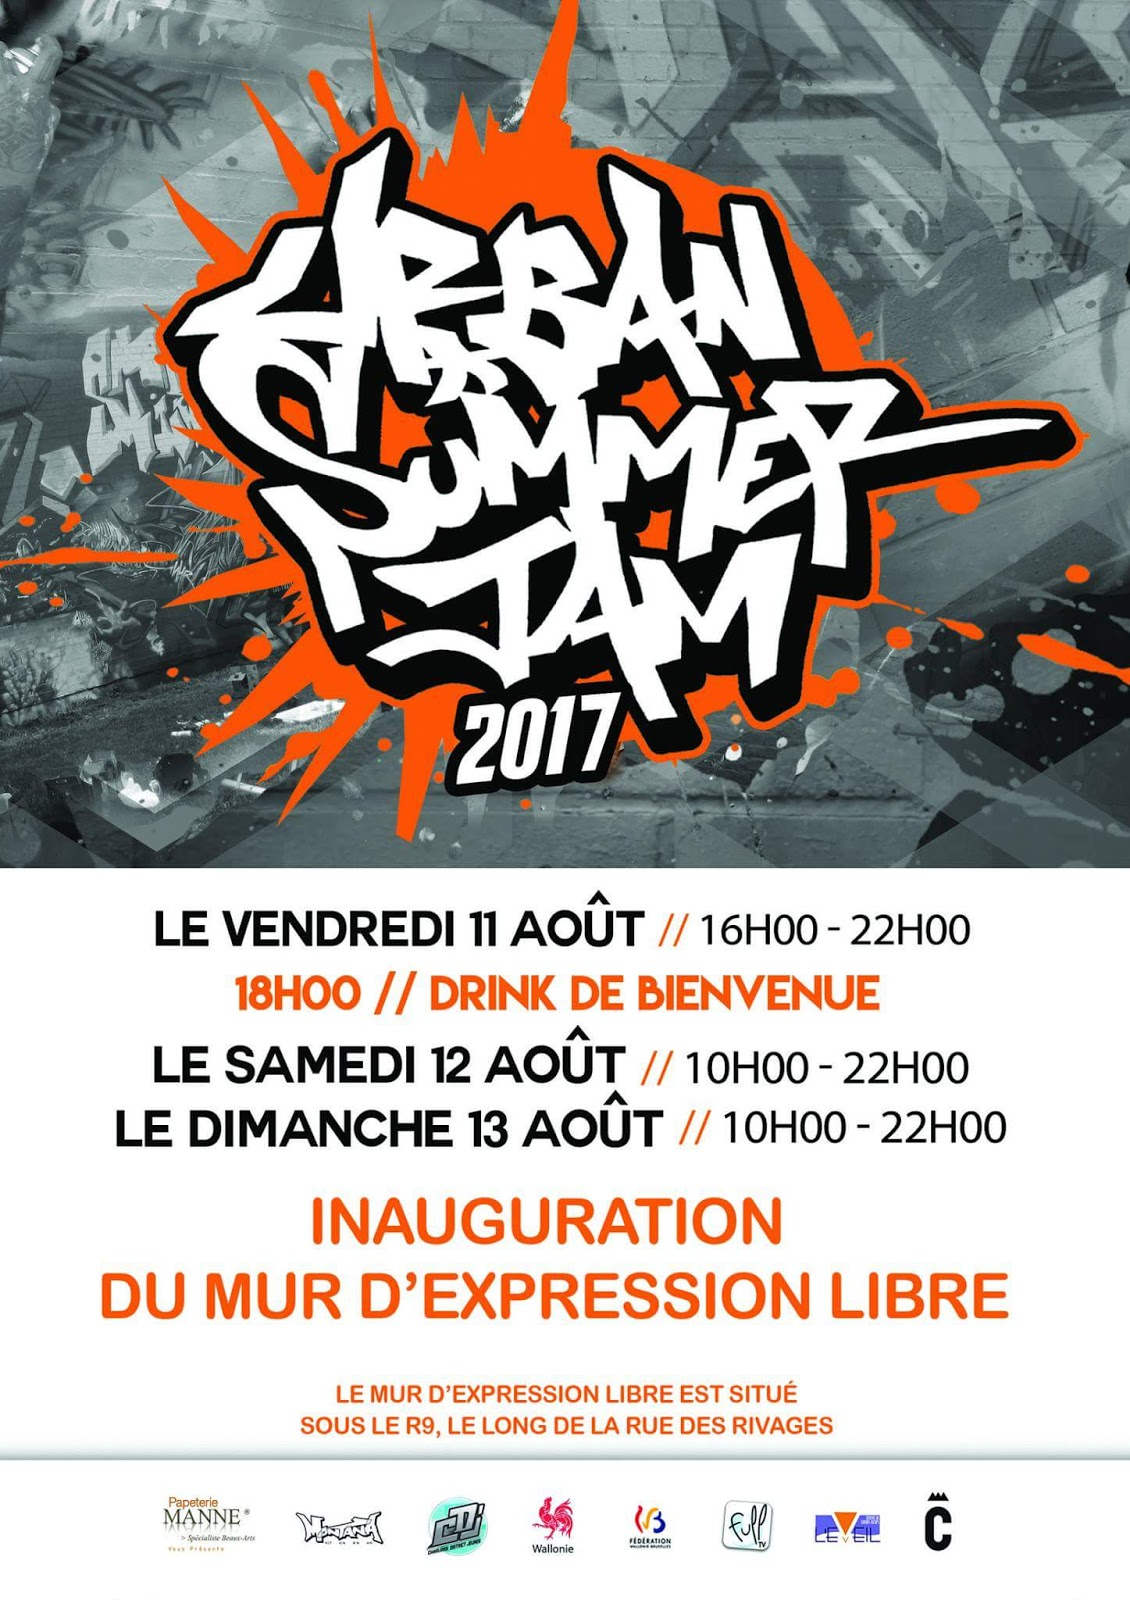 URBAN SUMMER JAM - GRAFFITI à CHARLEROI